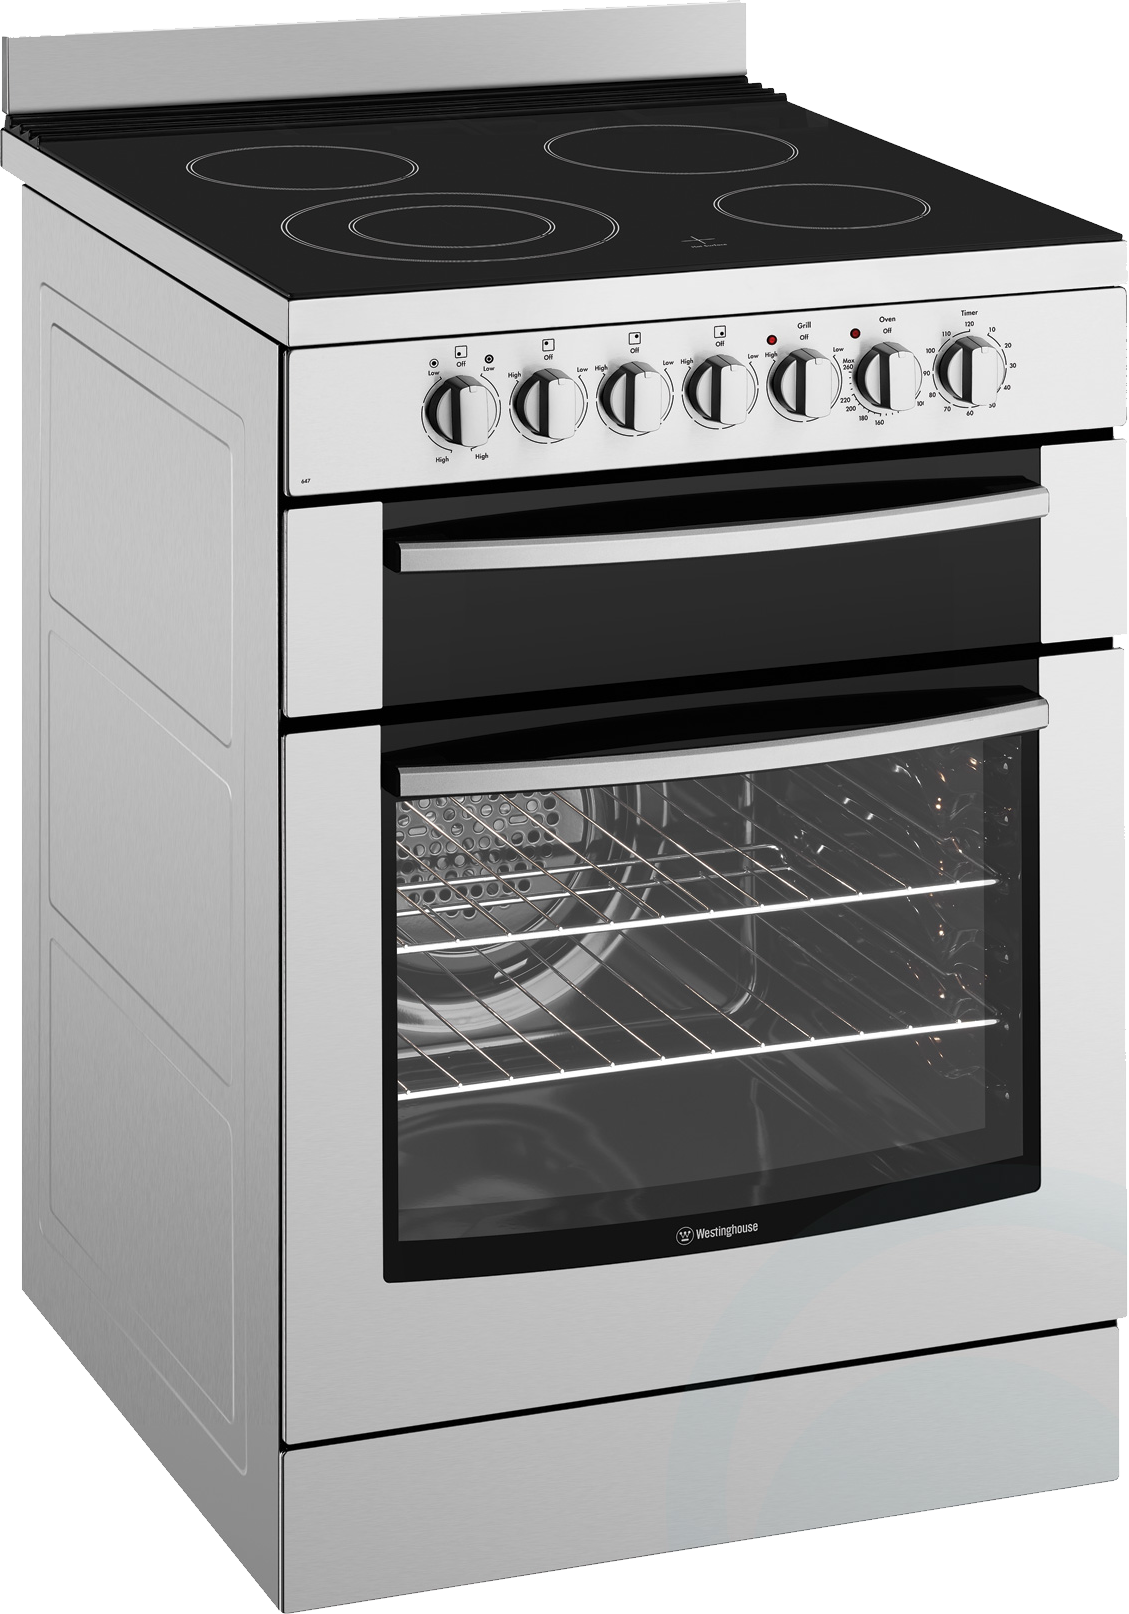 Stove PNG images, electric stove PNG.